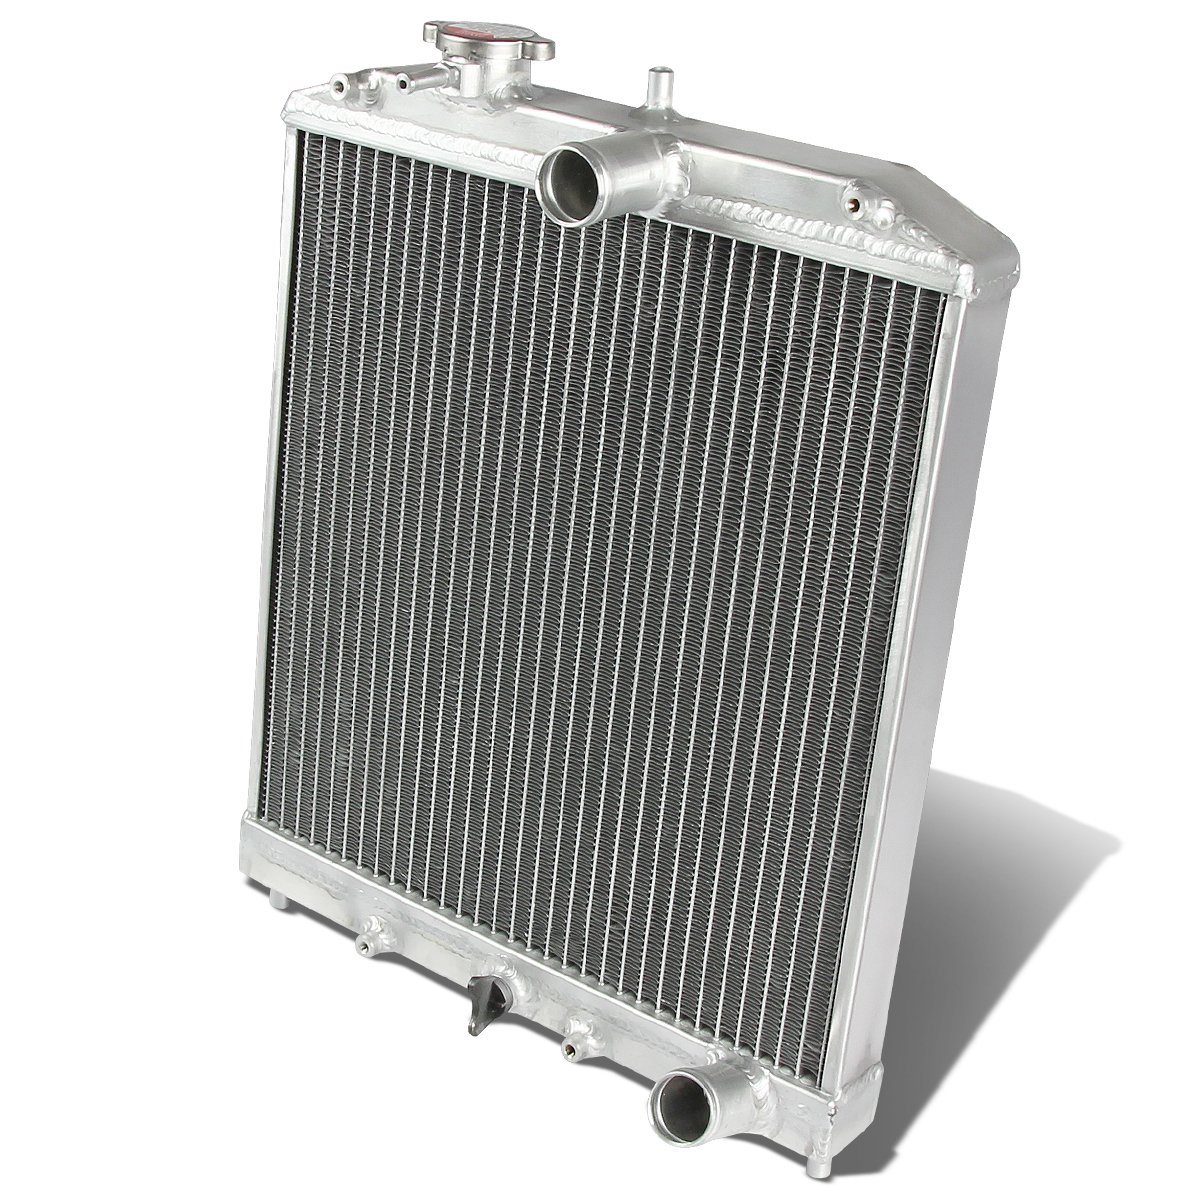 For Honda Civic Manual Transmission Full Aluminum 2-Row Racing Radiator - EJ EK EG DB DC Auto Dynasty